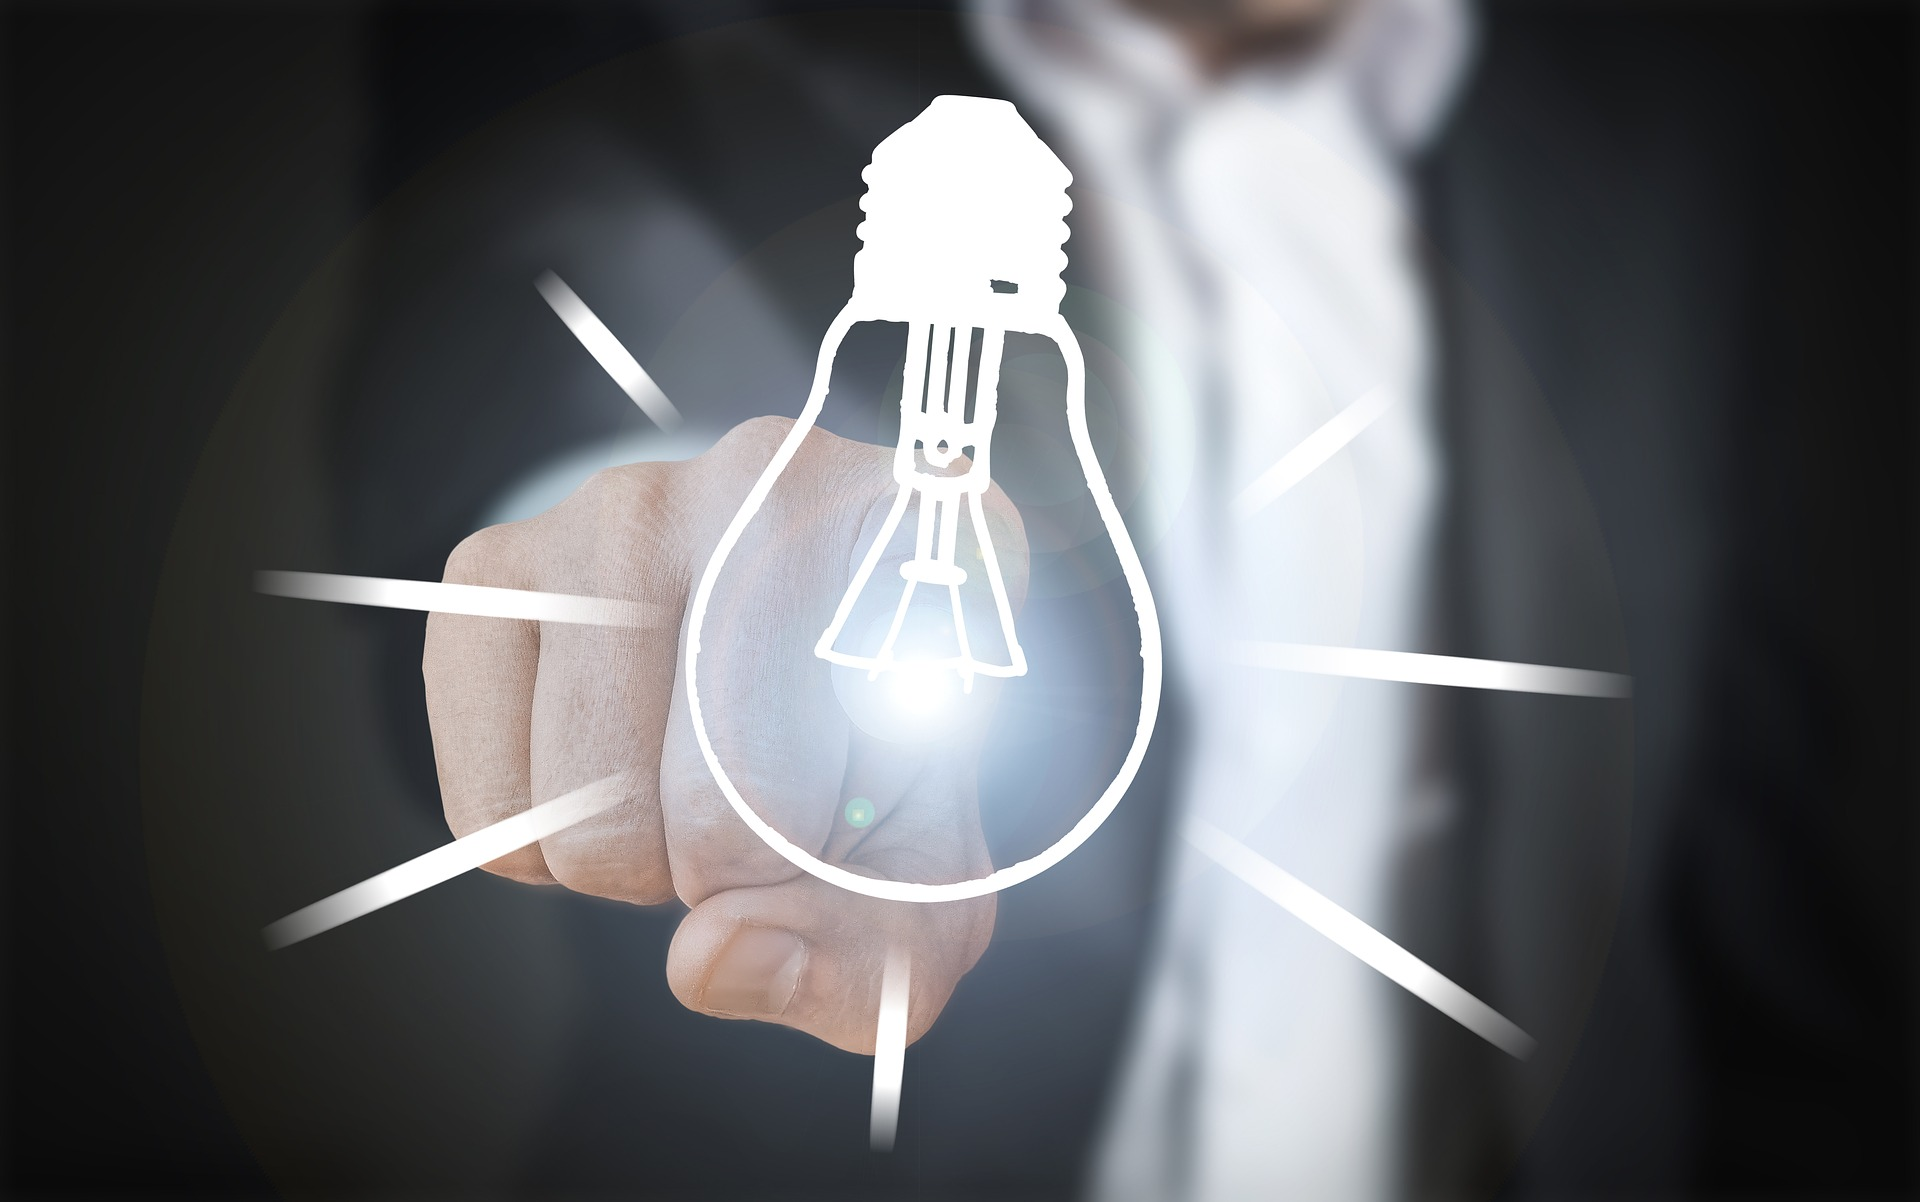 A man wearing a business suit touches a drawing of an illuminated lightbulb.